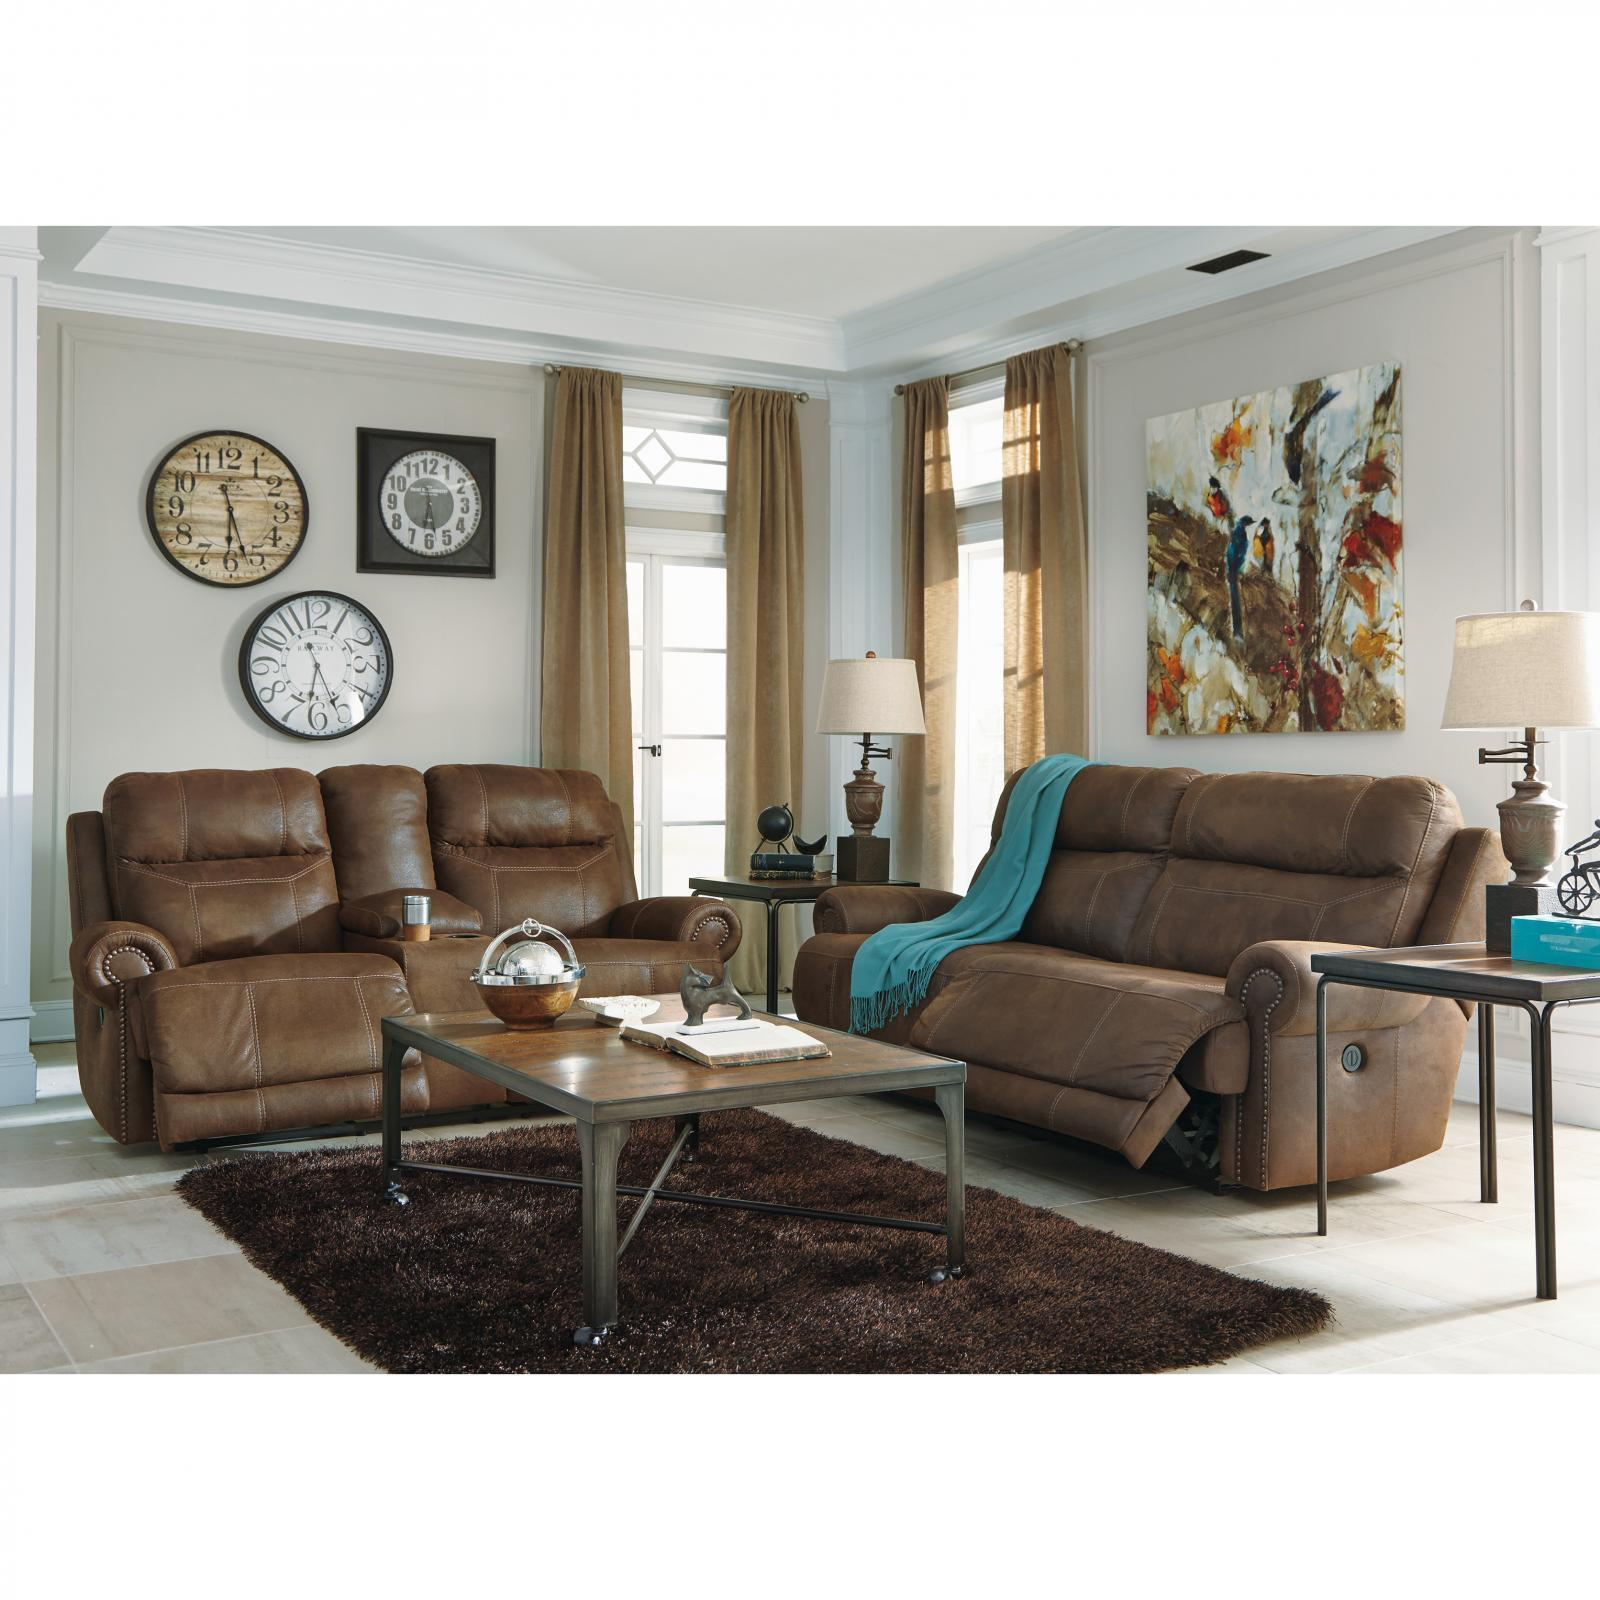 Ashley Austere 3 Piece Power Living Room Set in Brown Contemporary Style